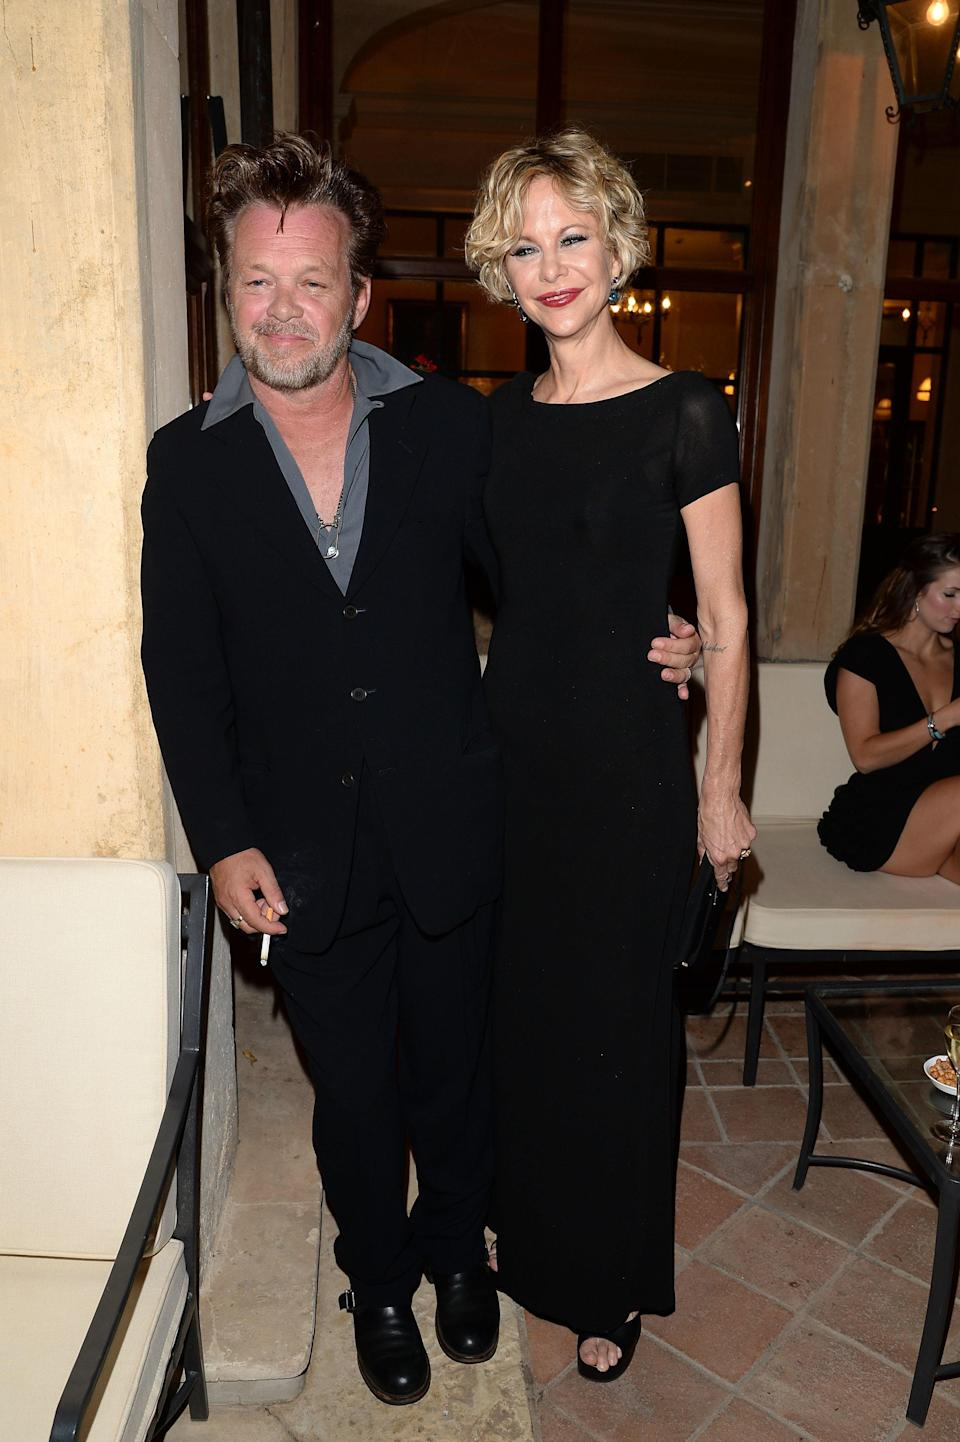 """A year after announcing their engagement, John Mellencamp and Meg Ryan have split up, <a href=""""https://people.com/movies/meg-ryan-and-john-mellencamp-split-after-engagement-he-didnt-want-to-get-married-again/?utm_medium=browser&utm_source=people.com&utm_content=20191104&utm_campaign=457711"""" rel=""""nofollow noopener"""" target=""""_blank"""" data-ylk=""""slk:People"""" class=""""link rapid-noclick-resp""""><em>People</em></a> confirms. """"He didn't want to get married again,"""" a source tells the outlet. """"He loves her, but marriage never seemed to be a part of it. It's unclear how important a marriage was to Meg. But they spent a lot of time together, and it's too bad they split. They really got along so well together."""" The couple first started dating back in 2011 and were on and off for a few years before getting engaged."""